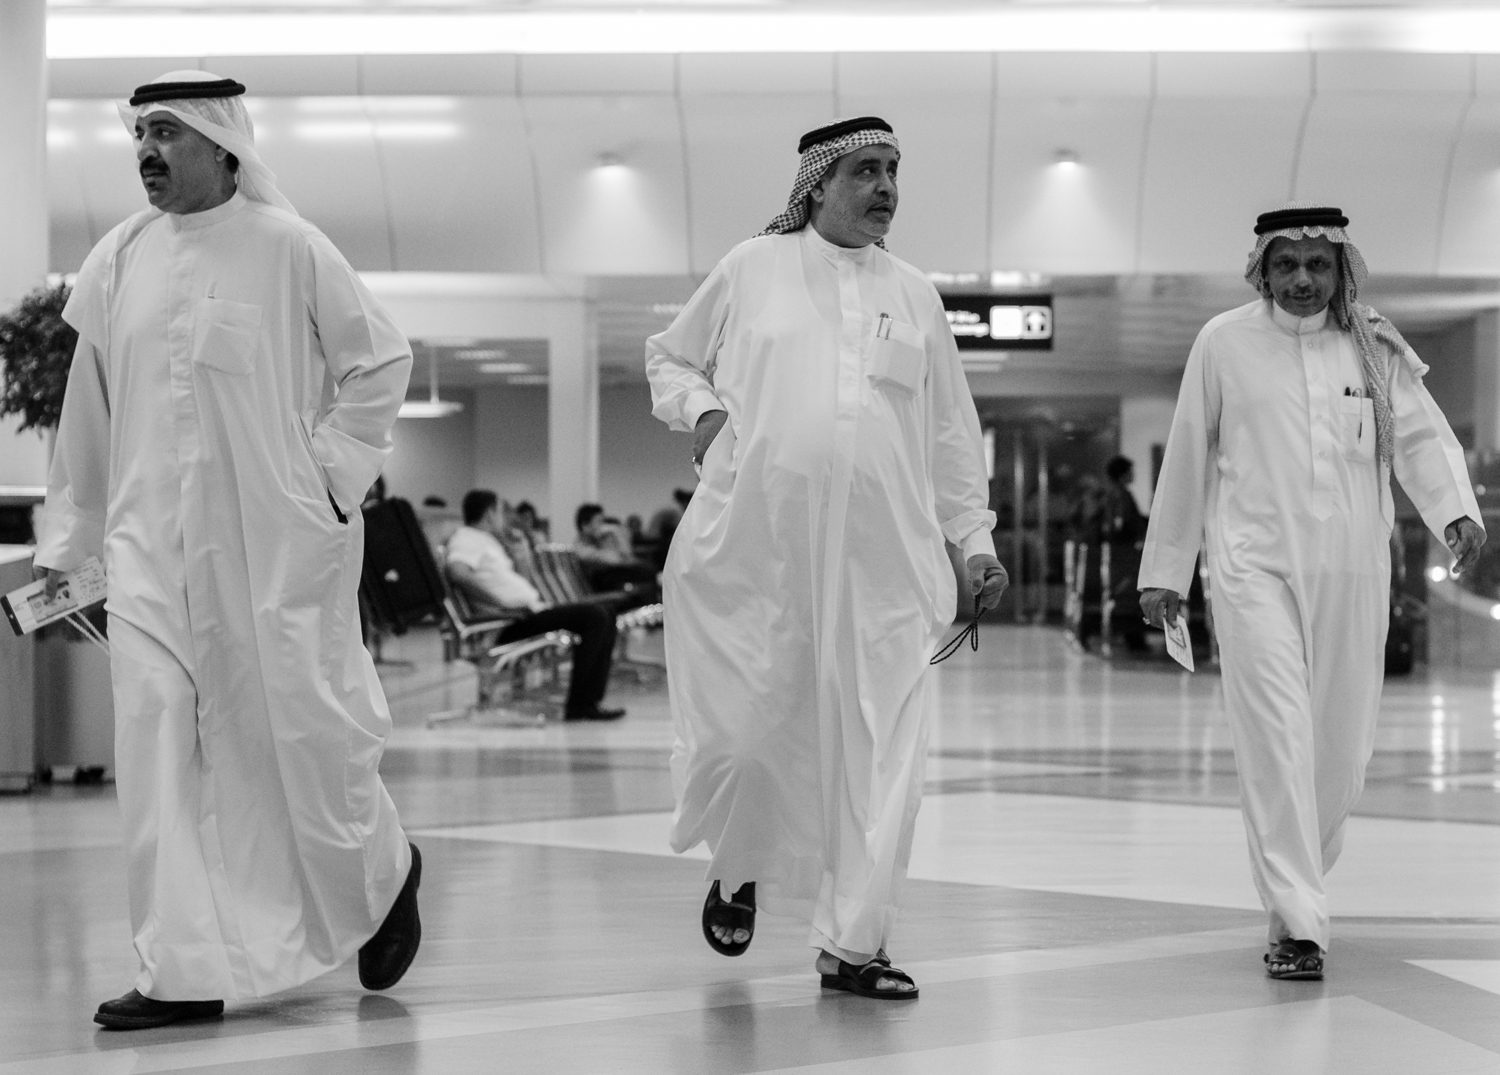 riyadh airport documentary photography stuart coleman